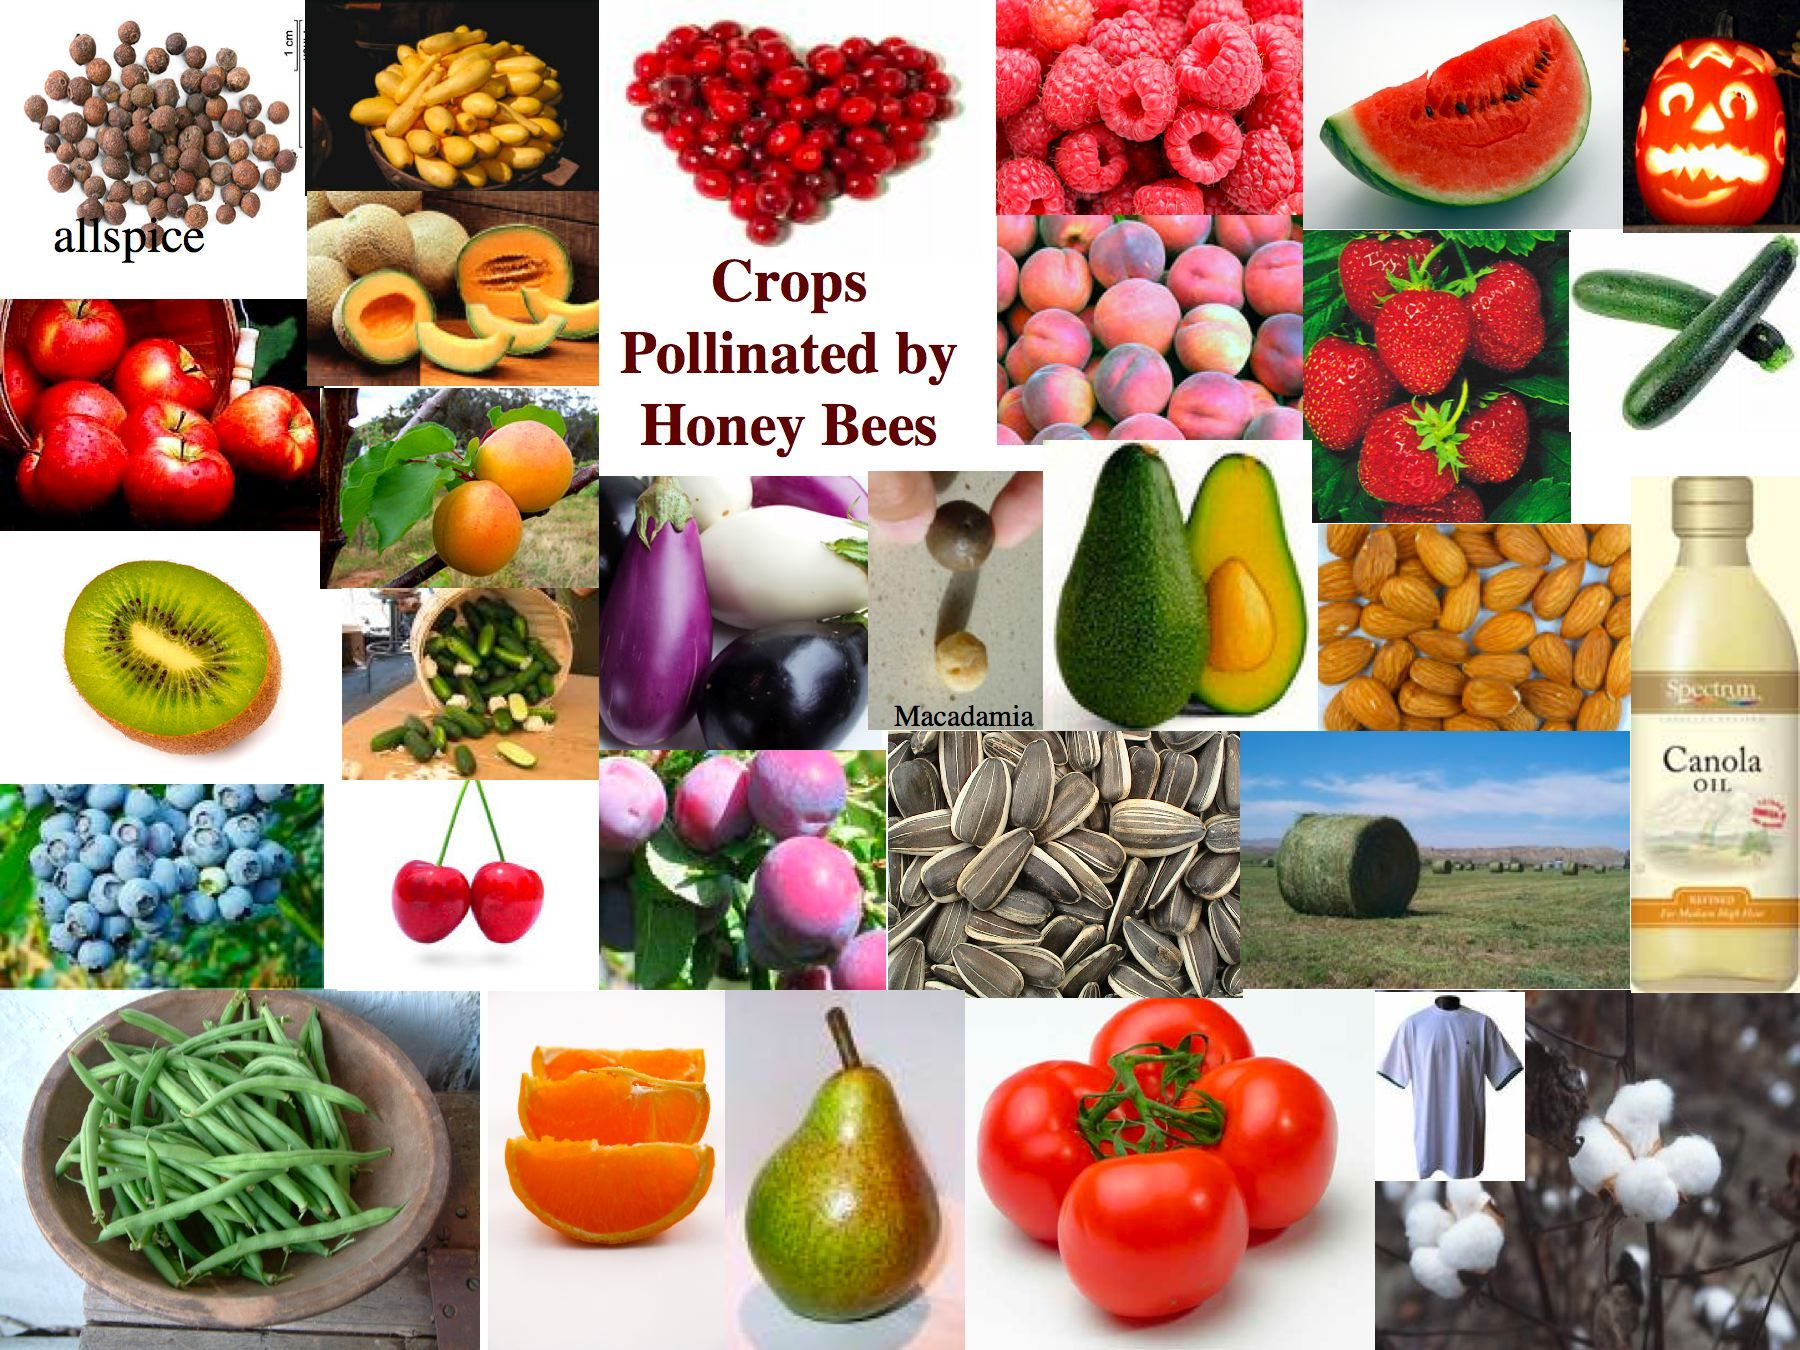 Image source plantsam com - Crops Pollinated By Honey Bees